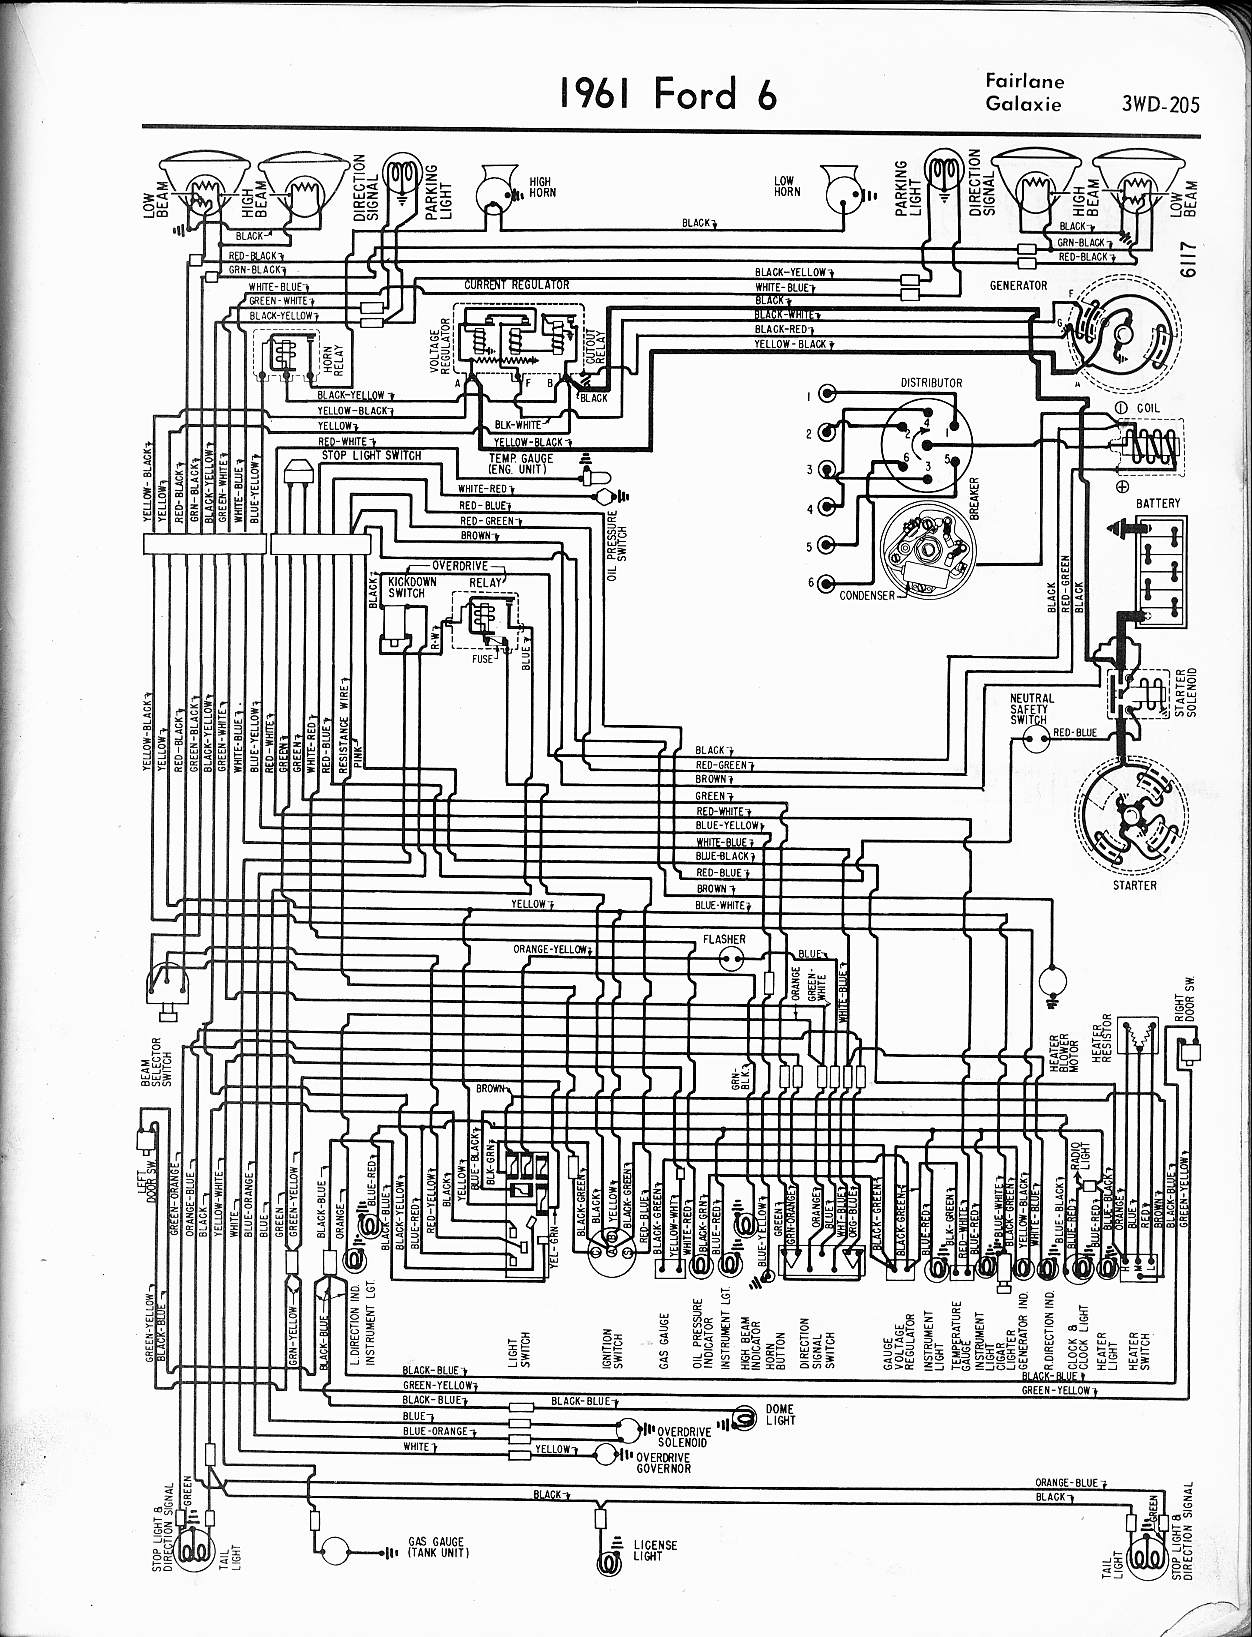 MWire5765 205 wiring diagram model a ford the wiring diagram readingrat net Ford E 350 Wiring Diagrams at gsmx.co